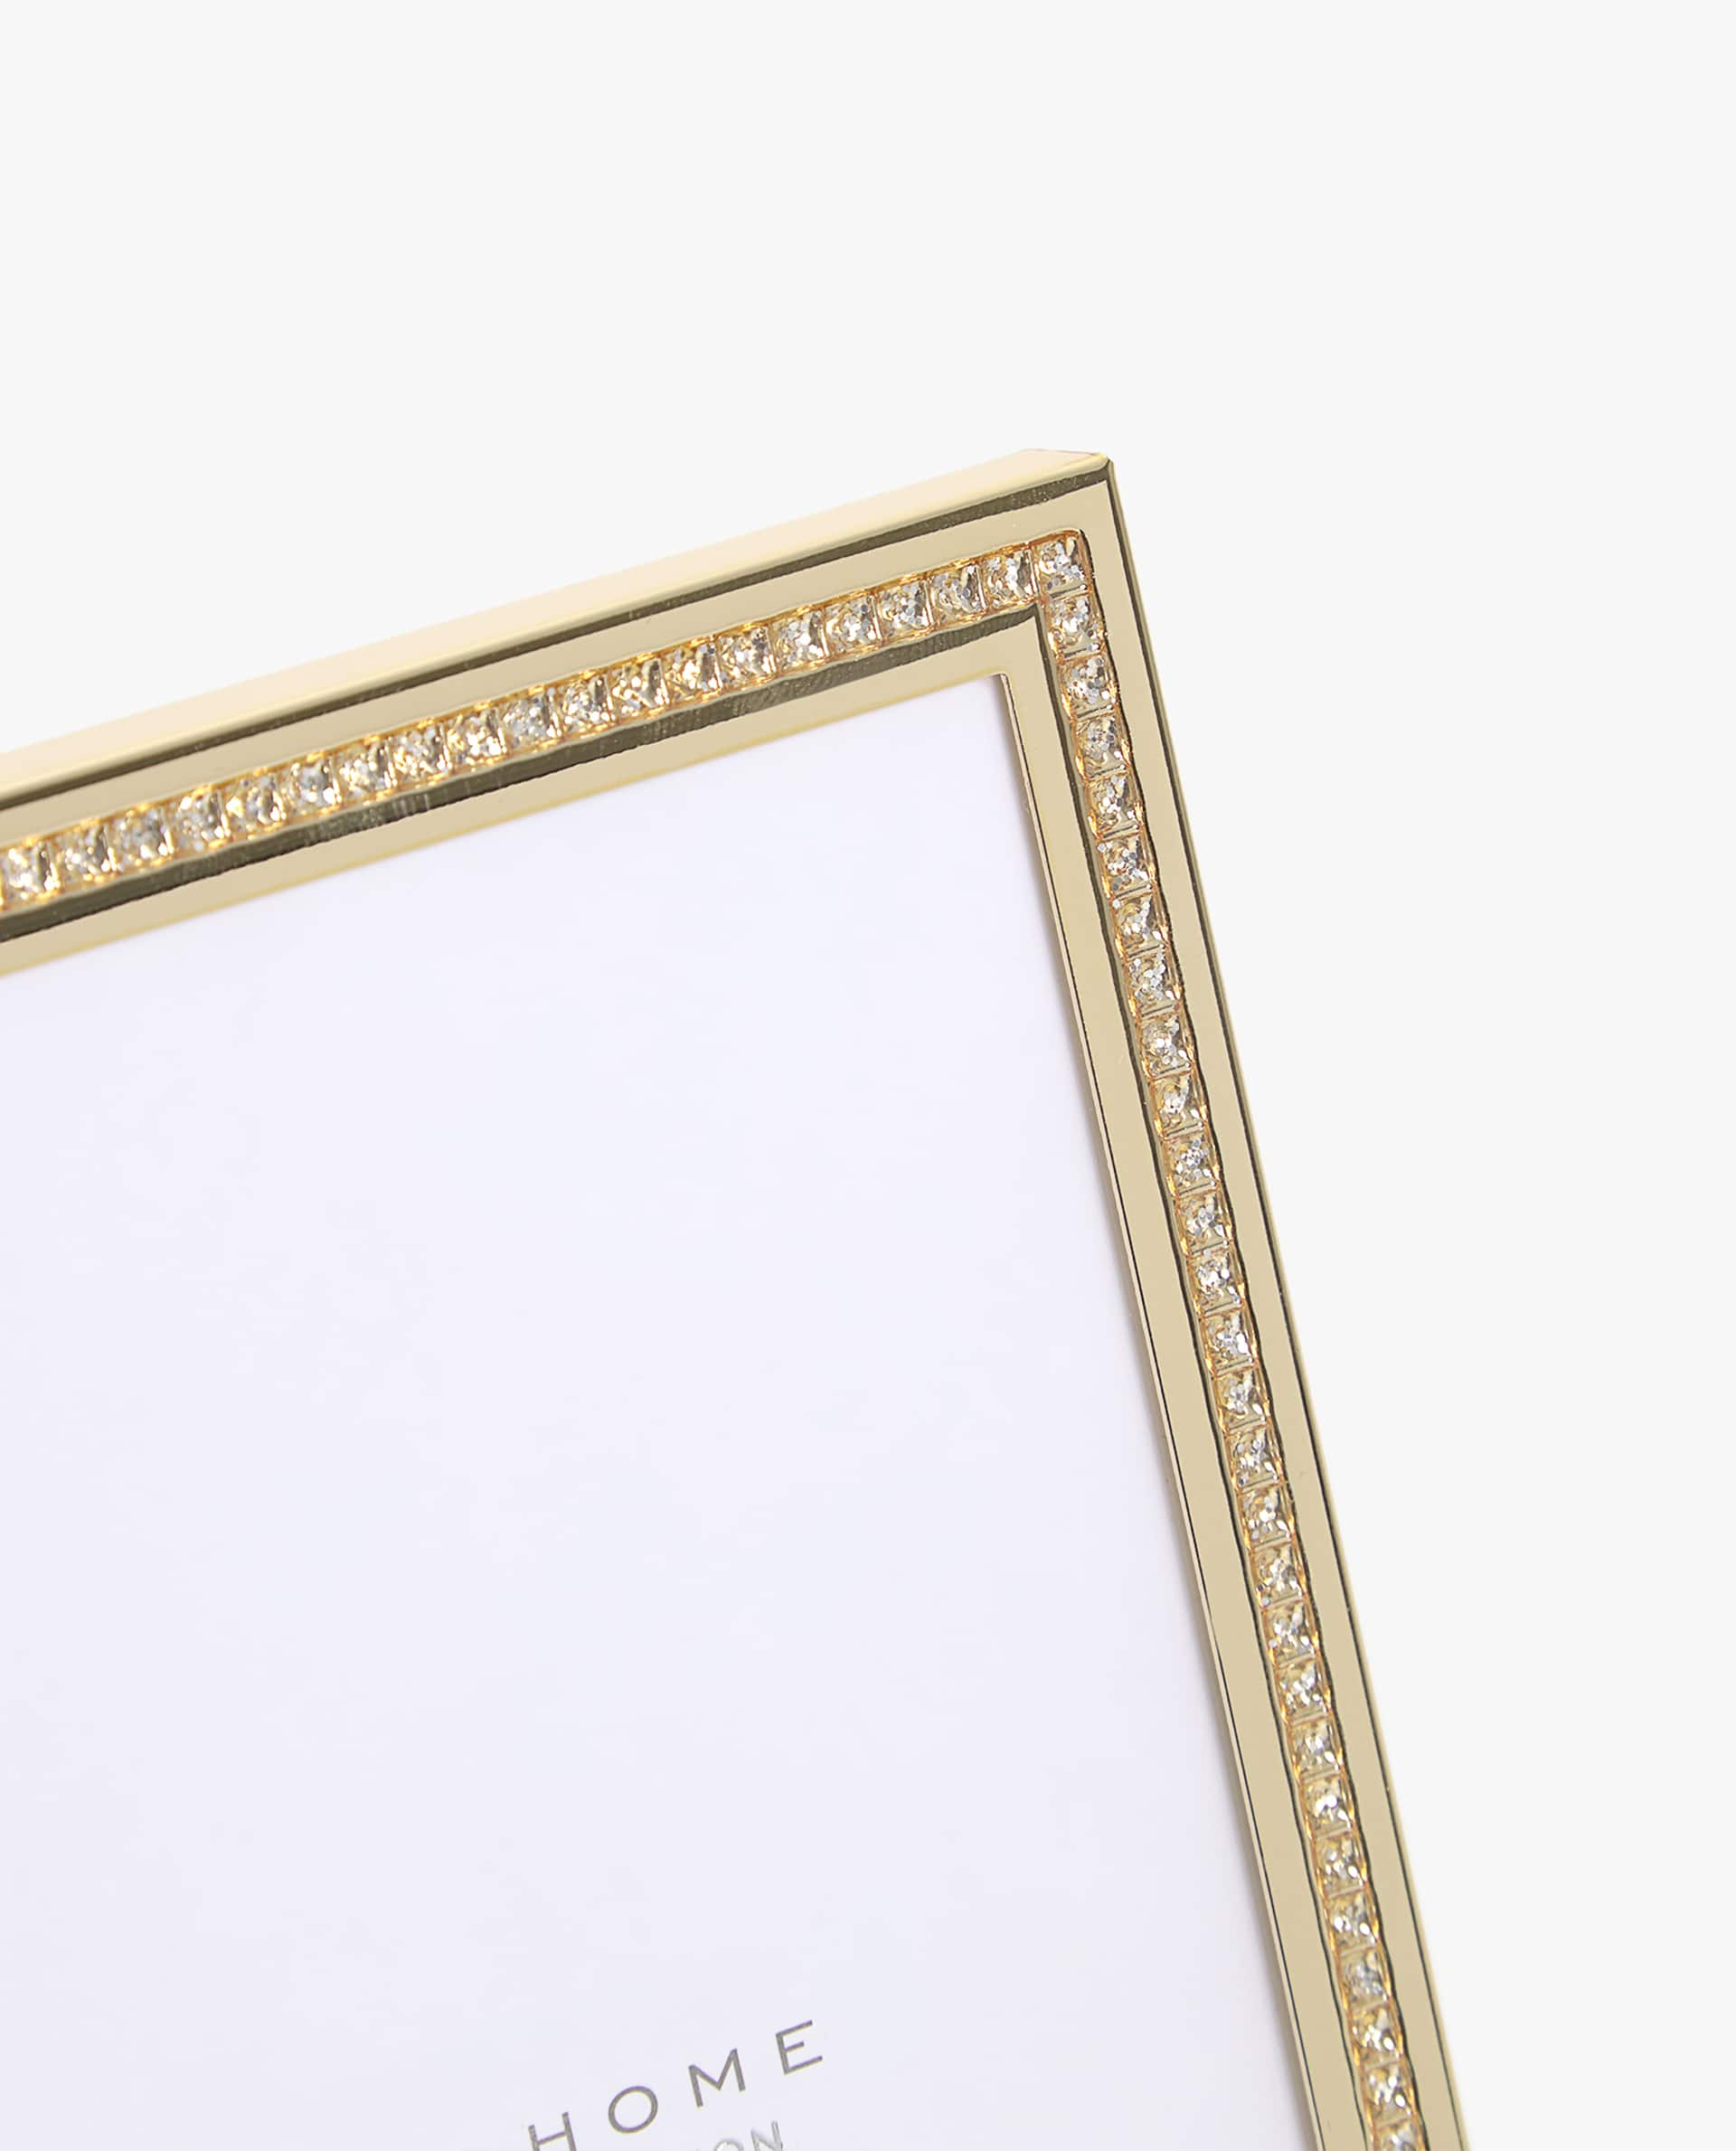 GOLD METAL FRAME WITH RHINESTONES - PHOTO SIZE 4x6 in. - PHOTO ...